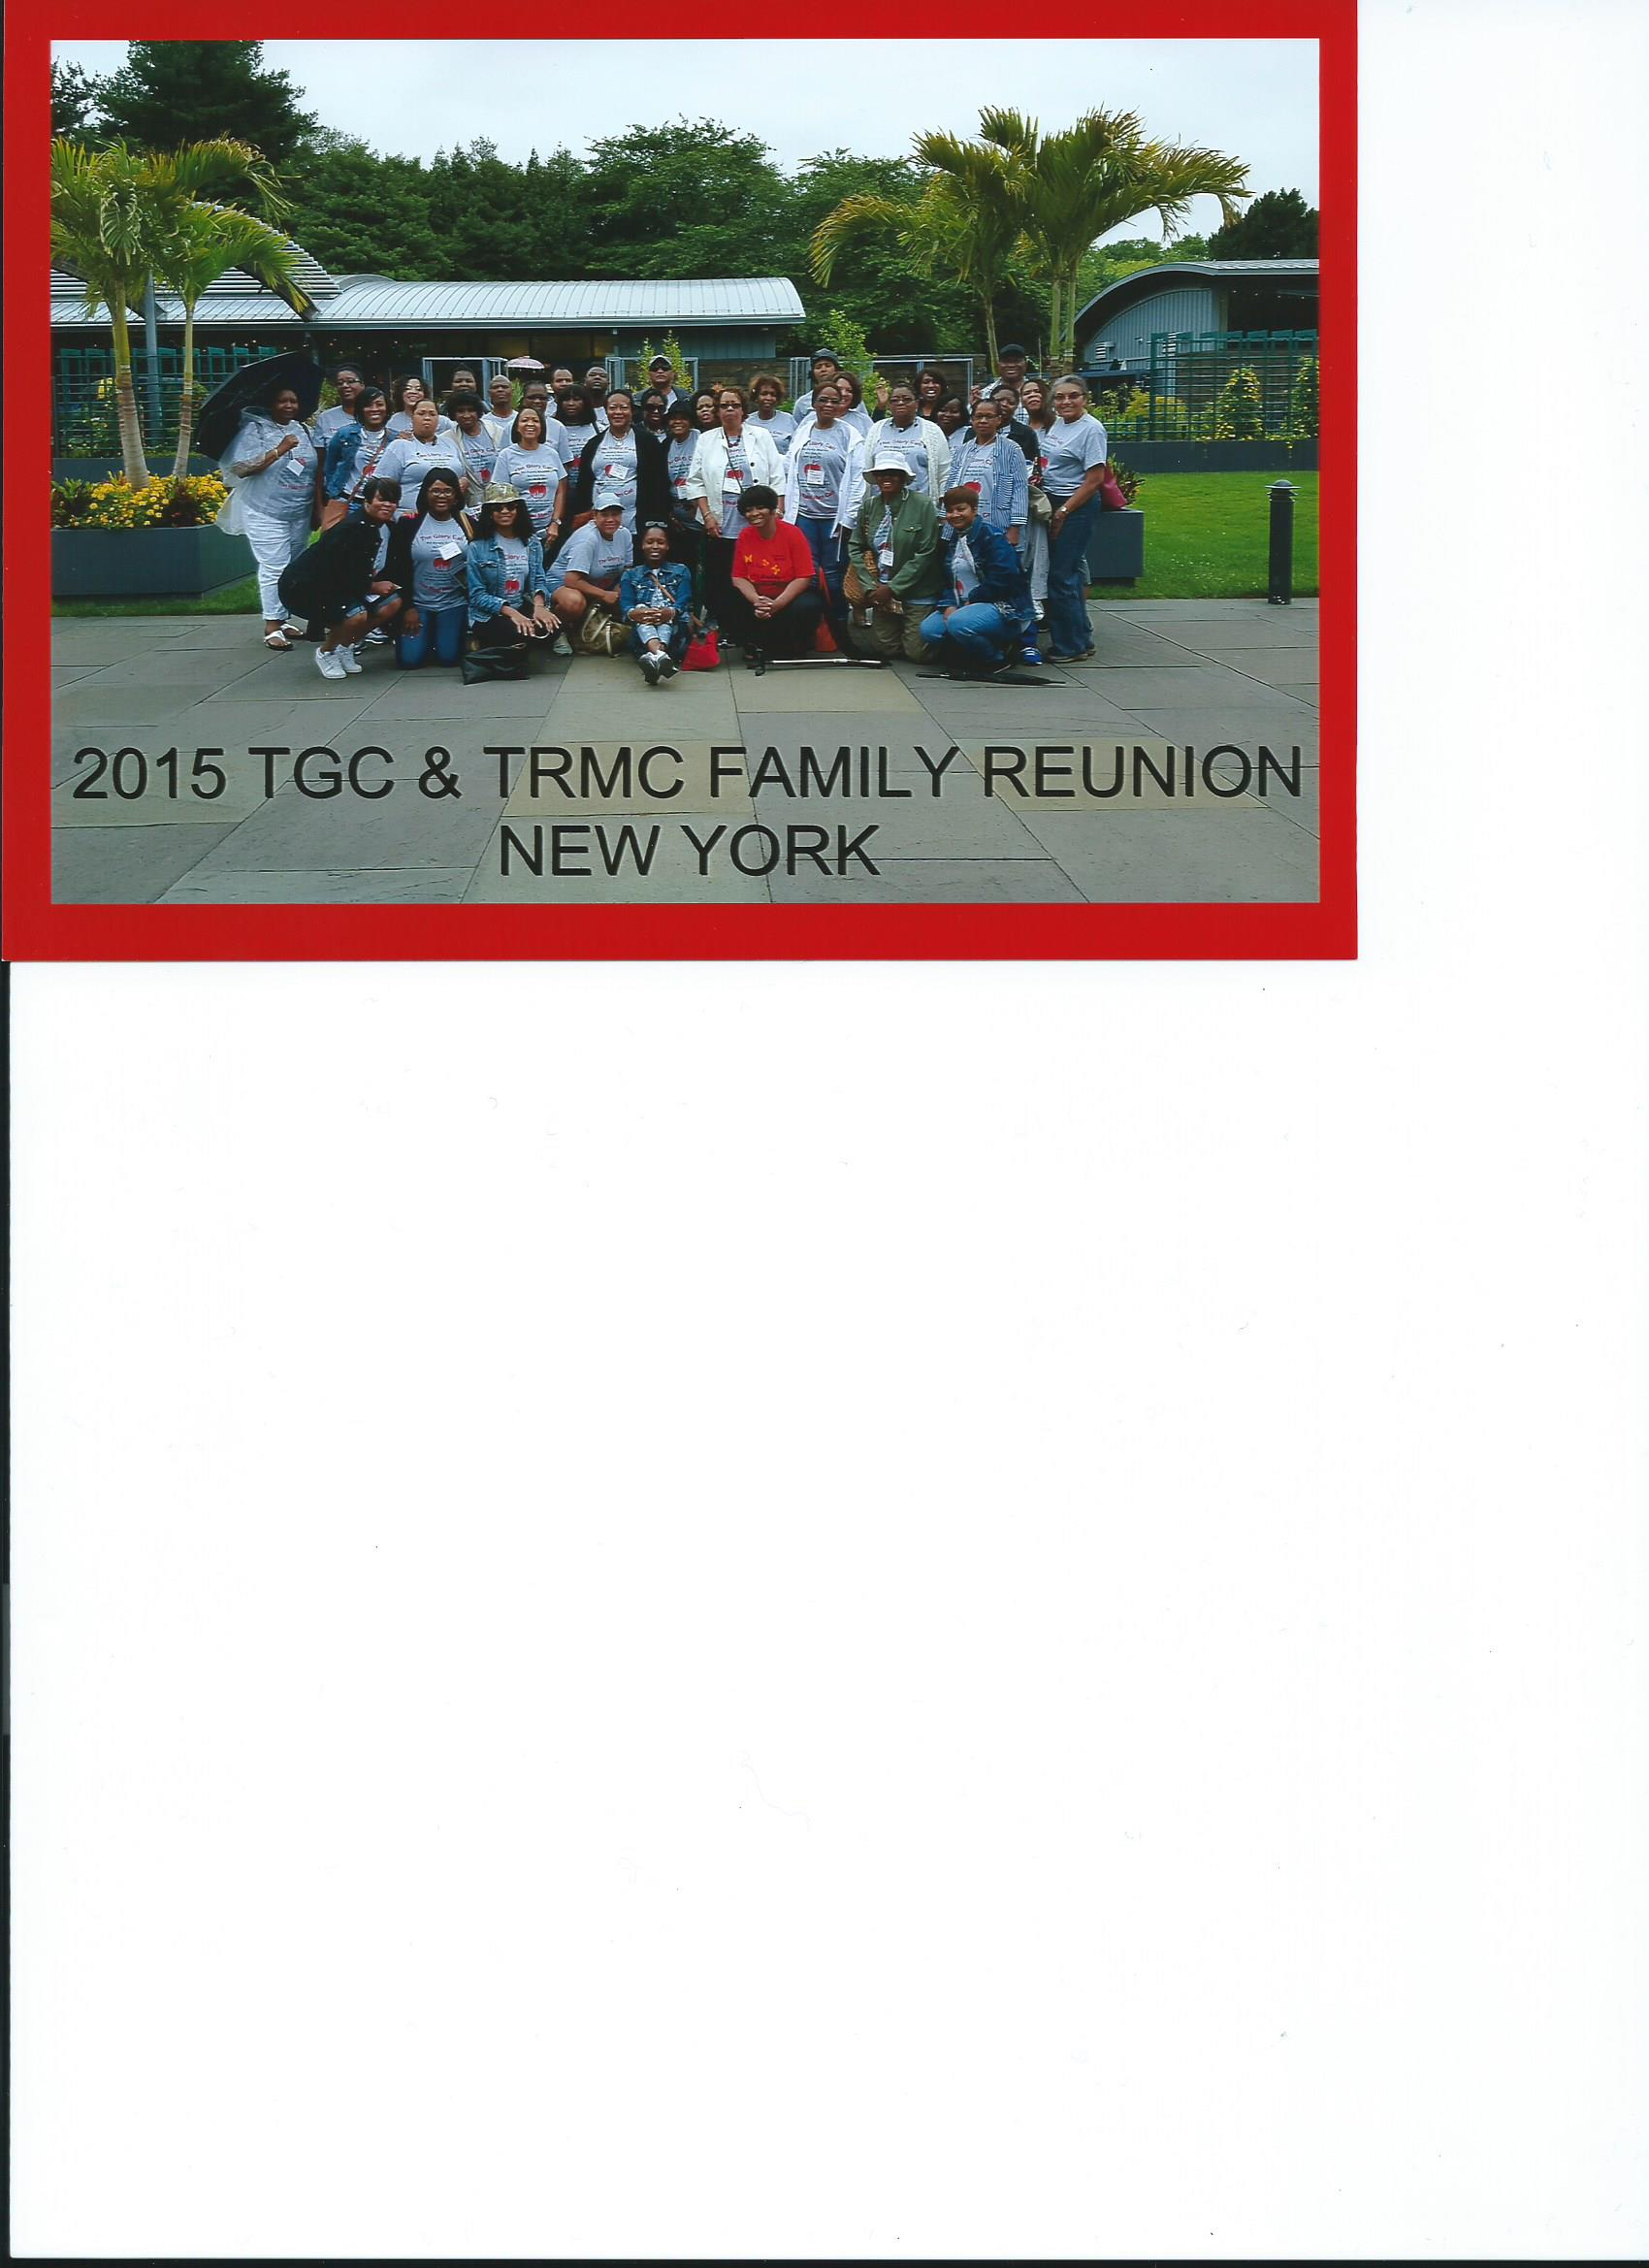 TGC TRMC Family Reunion 2015